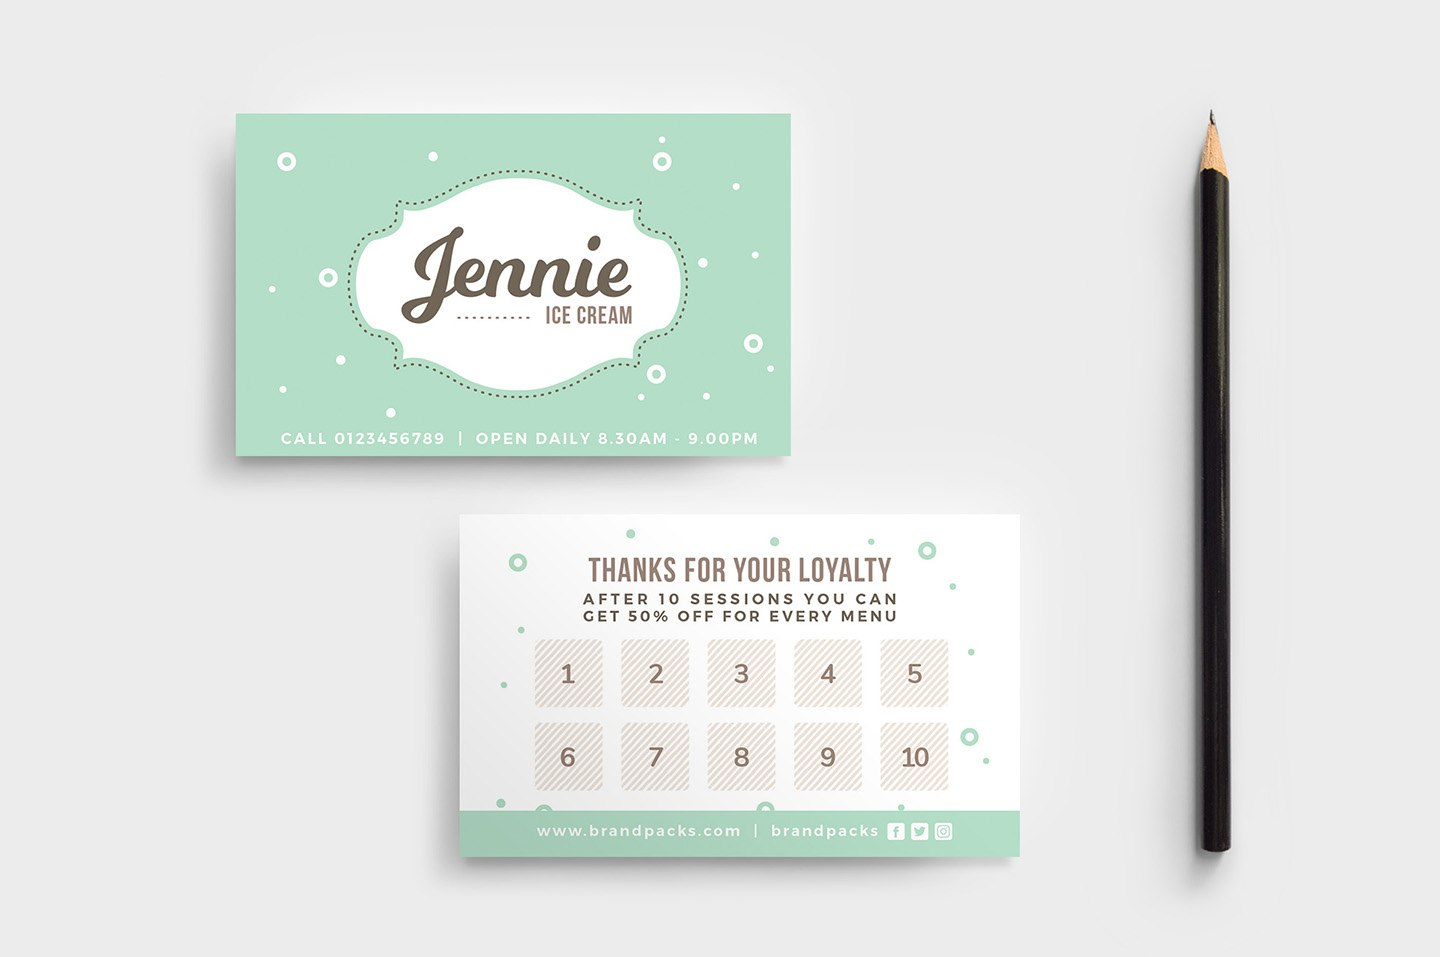 Free Loyalty Card Templates  Psd Ai  Vector  Brandpacks Inside Business Punch Card Template Free